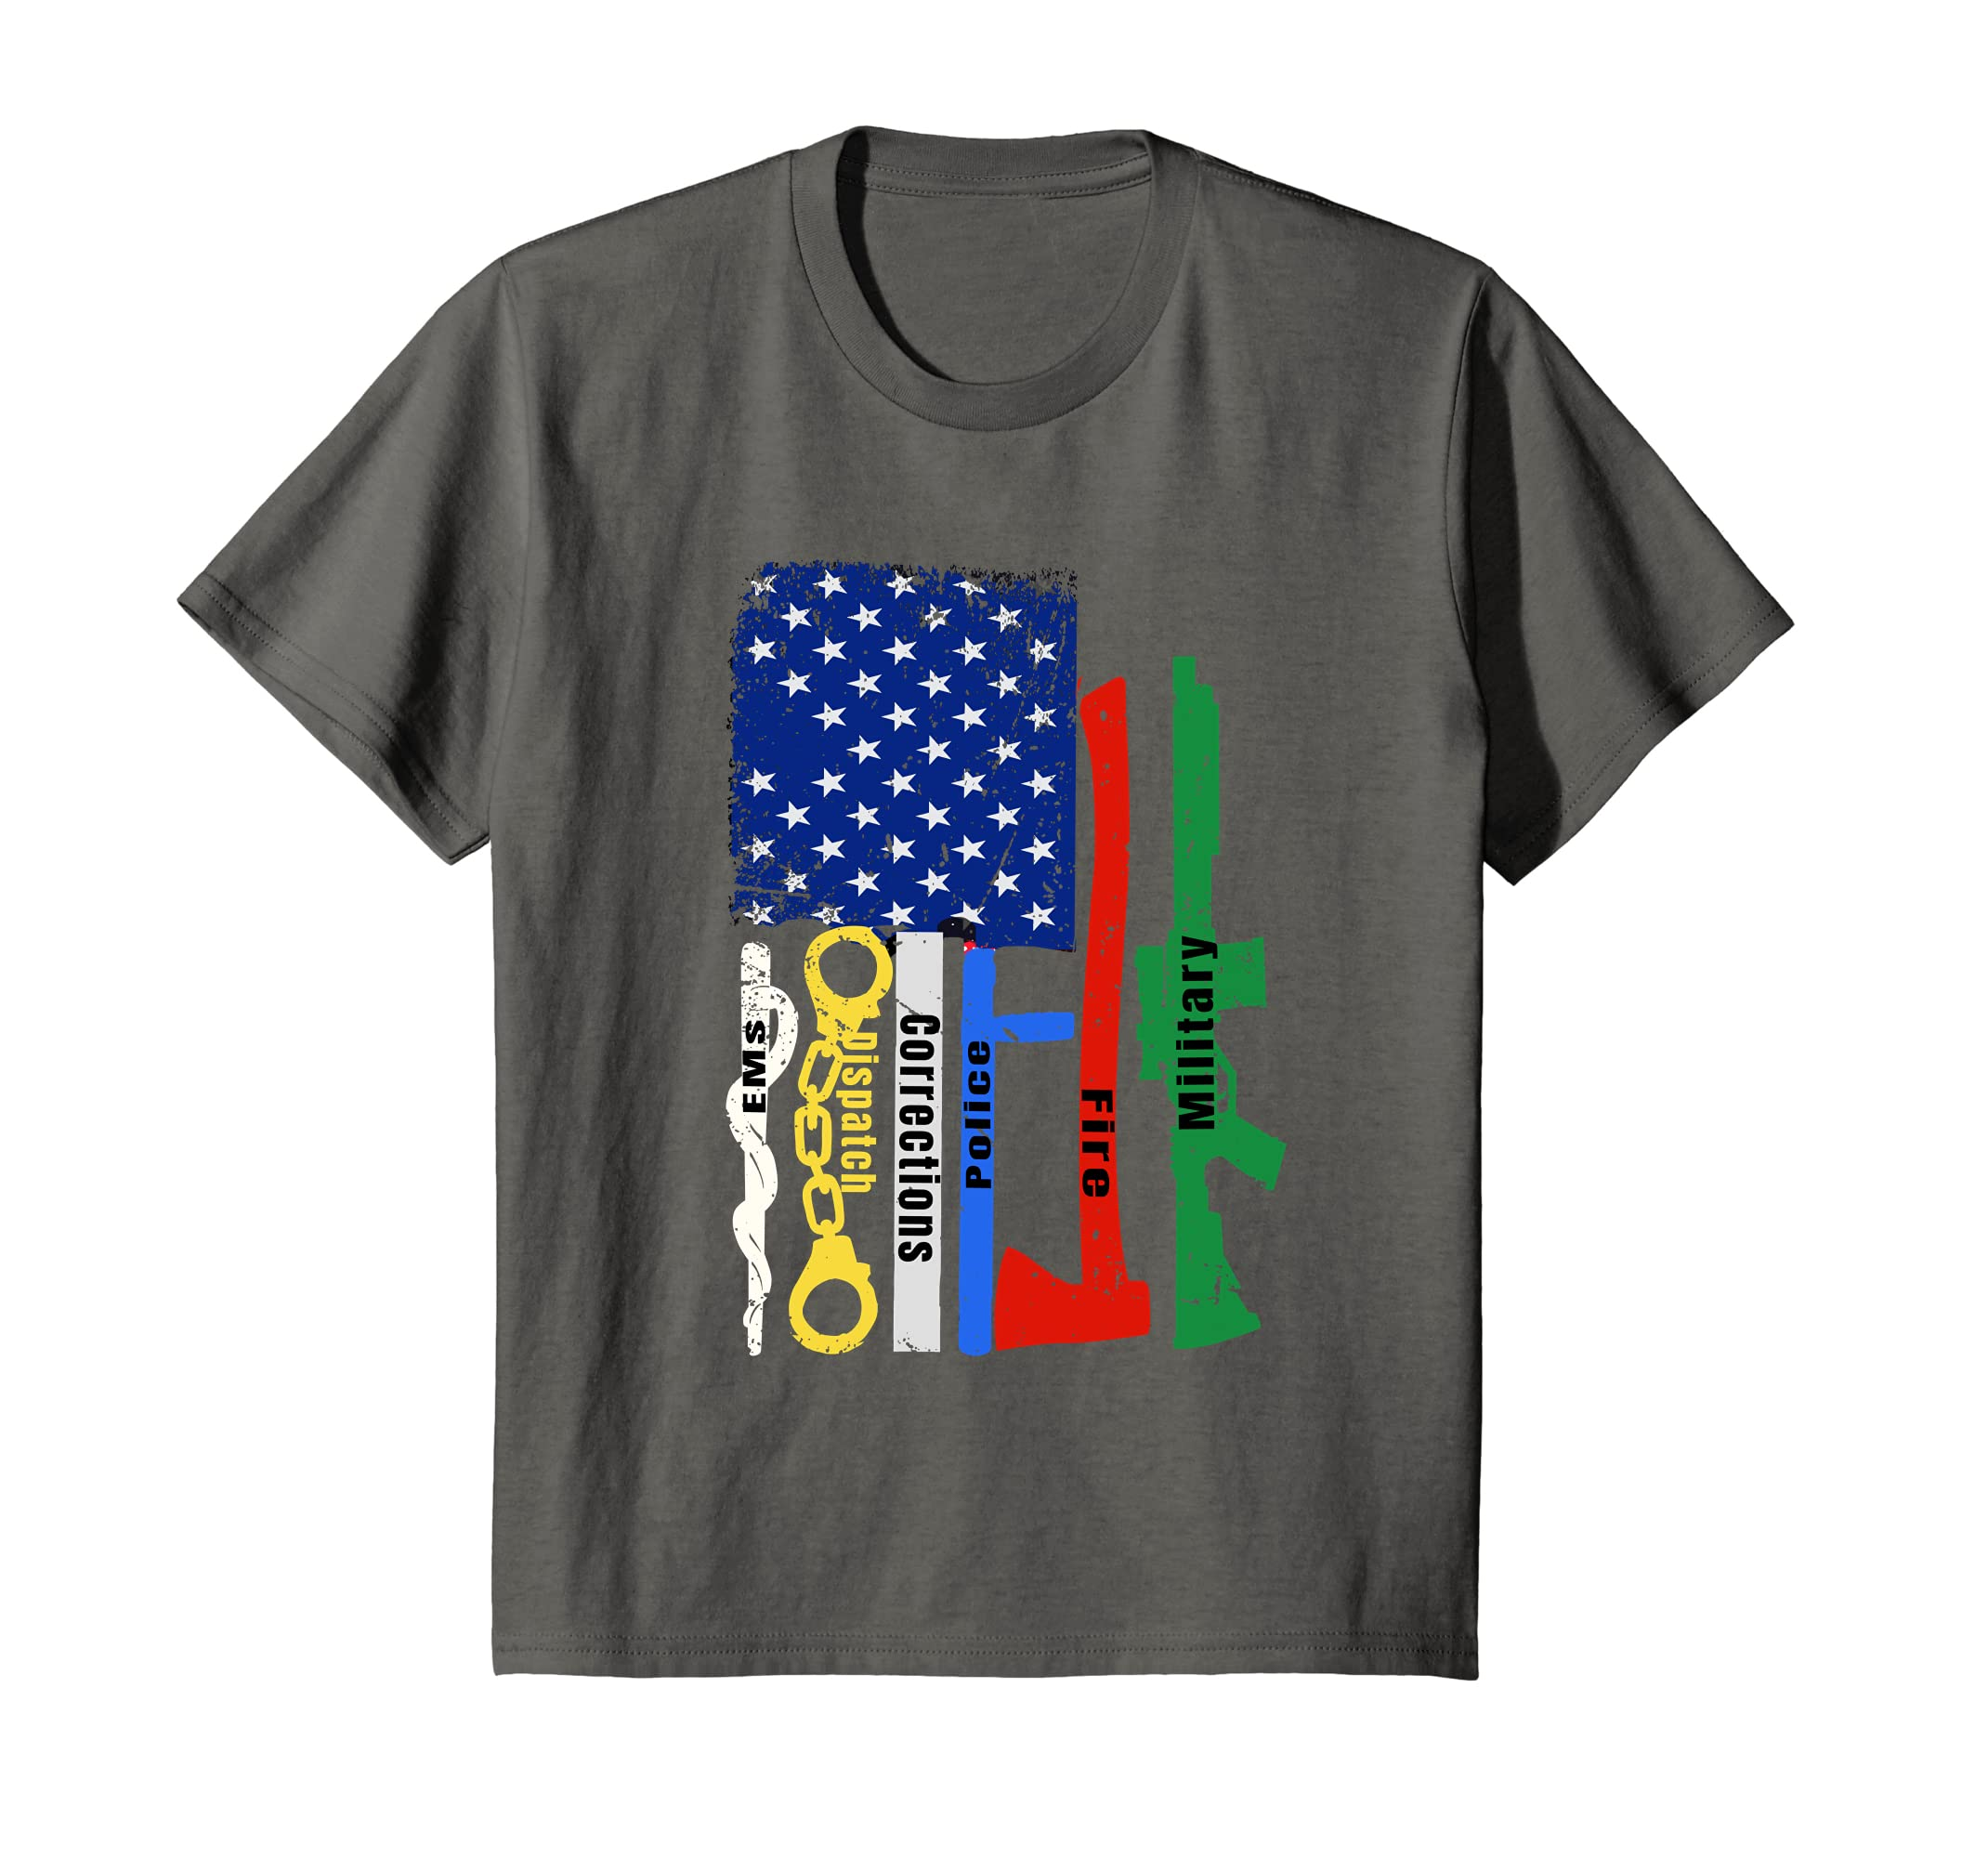 7d4c9466f Amazon.com: First Responder Gift Shirt EMS Firefighter Police Military:  Clothing